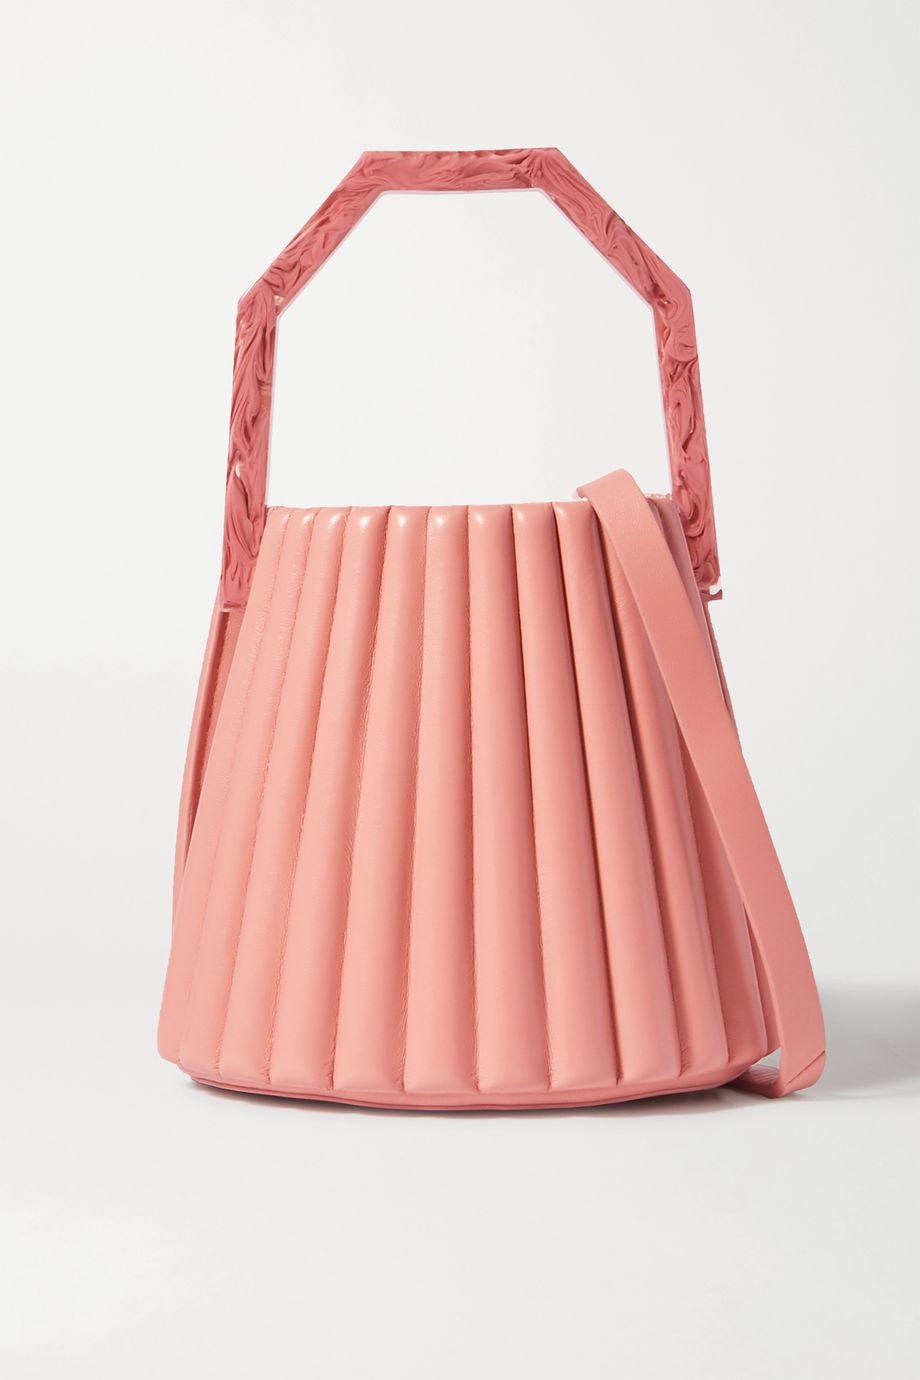 Louise Et Cie Alez small pleated leather bucket bag